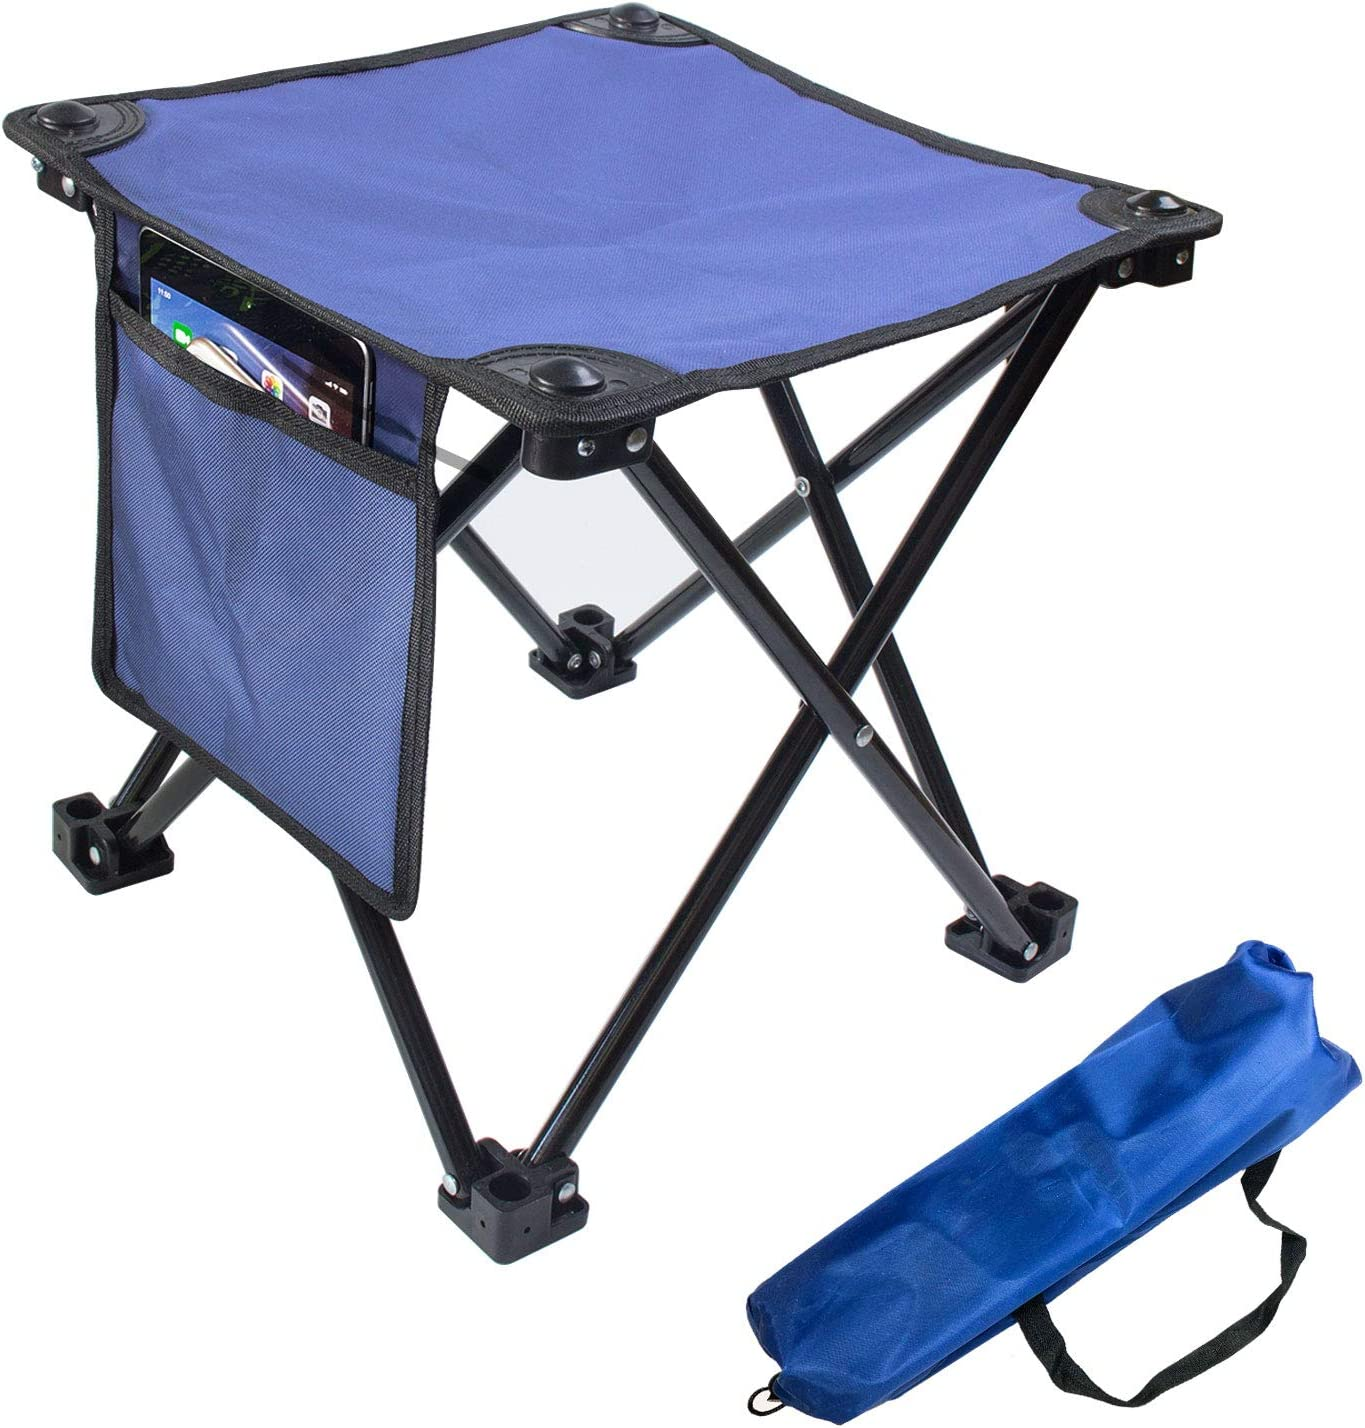 KOVALENTHOR Traveling Comfortable Retractable Stool Black Seat for Outdoor and Indoor Using for Garden Patio Fishing Camping Portable Lightweight Plastic Folding Telescoping Stool